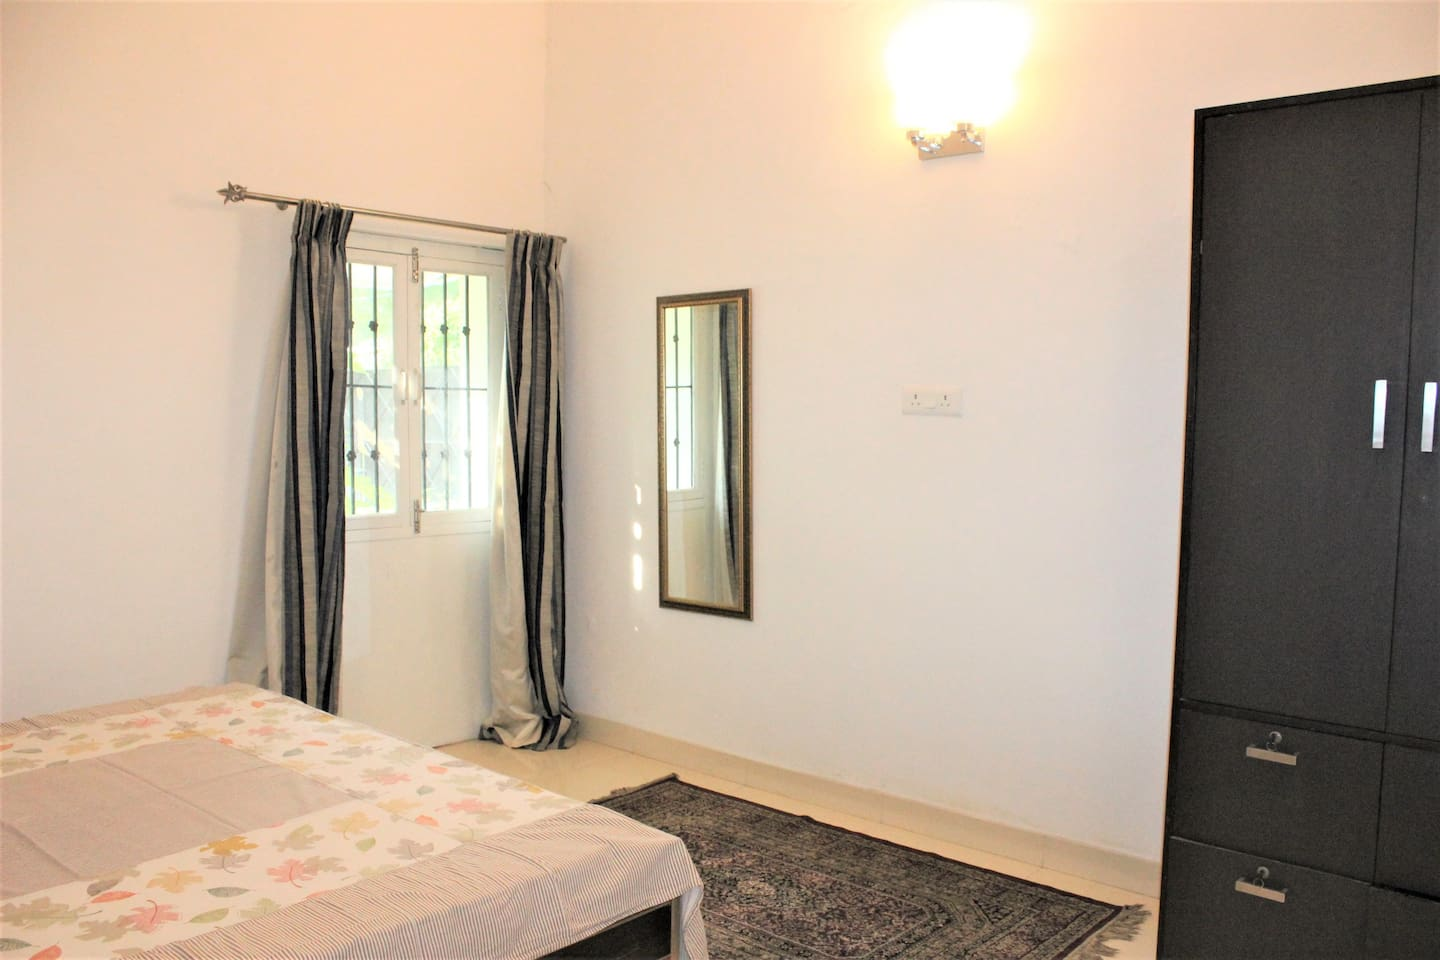 Bedroom with a double bed ( a comfortable mattress, pillows and a comforter) Big enough wardrobe for two people